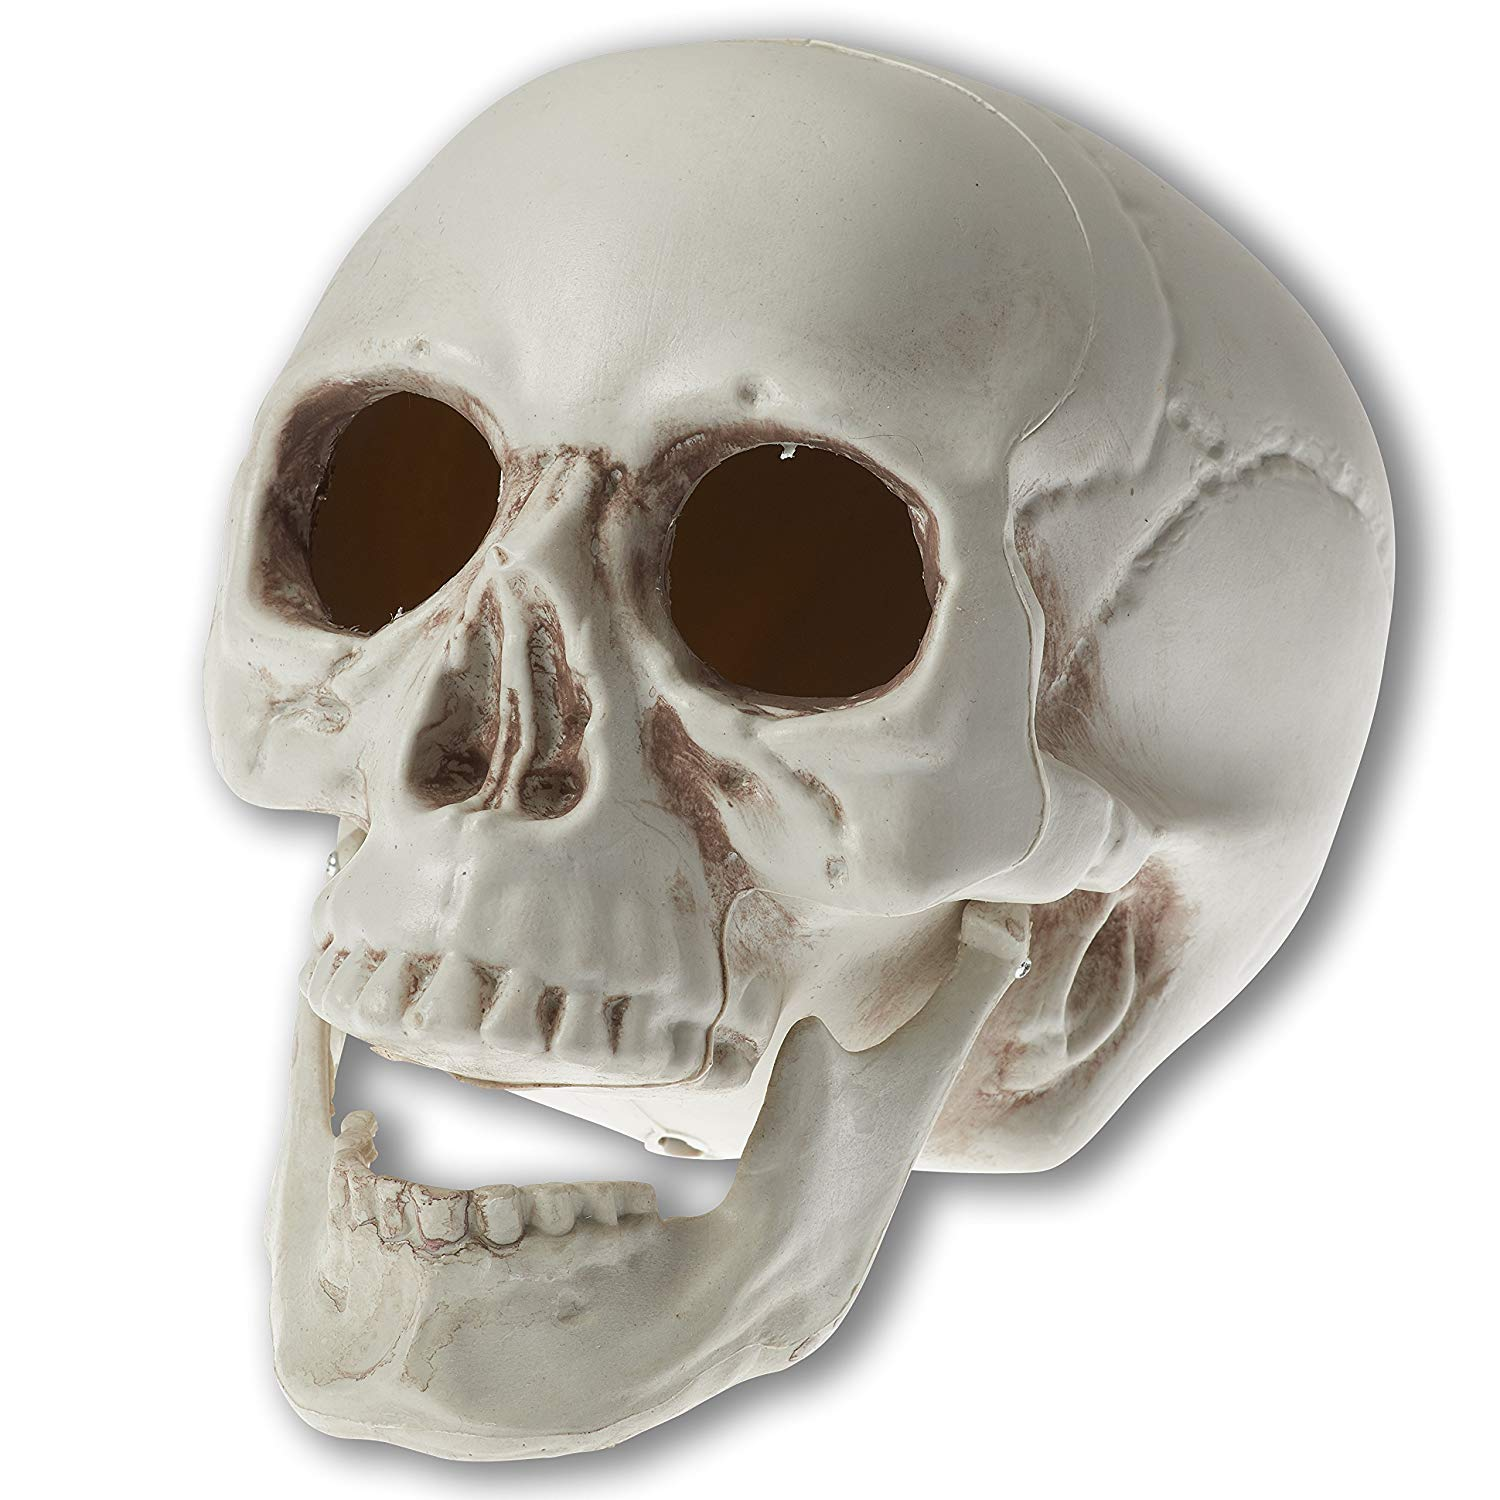 Amazon.com: Prextex 6.5 inch Realistic Looking Skeleton Skull for ...